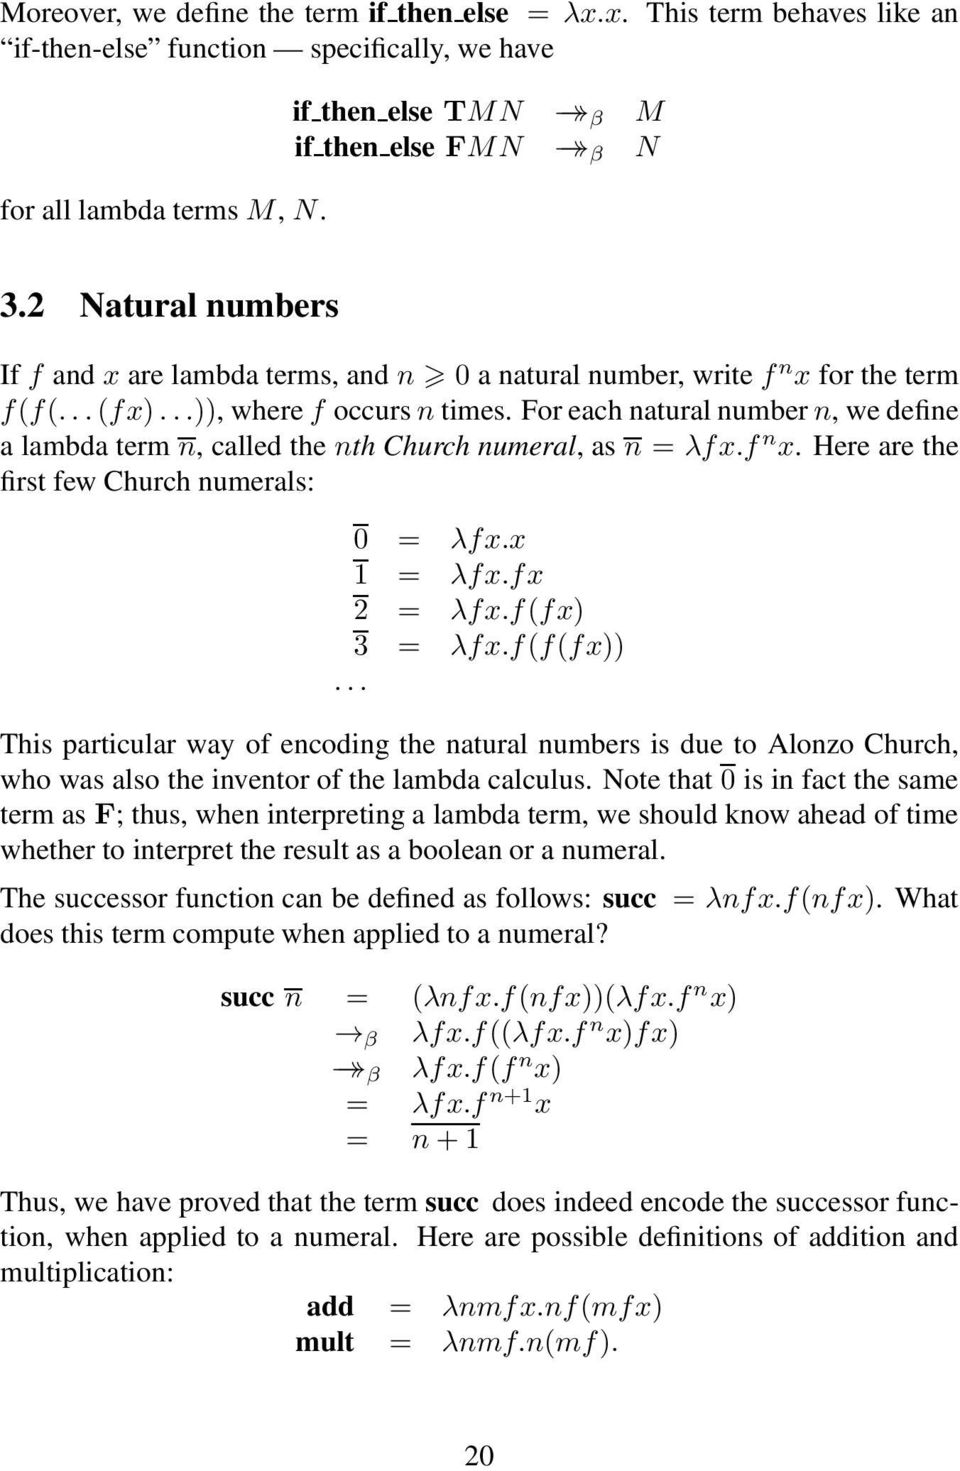 For each natural numbern, we define a lambda term n, called the nth Church numeral, as n = λfx.f n x. Here are the first few Church numerals: 0 = λfx.x 1 = λfx.fx 2 = λfx.f(fx) 3 = λfx.f(f(fx)).